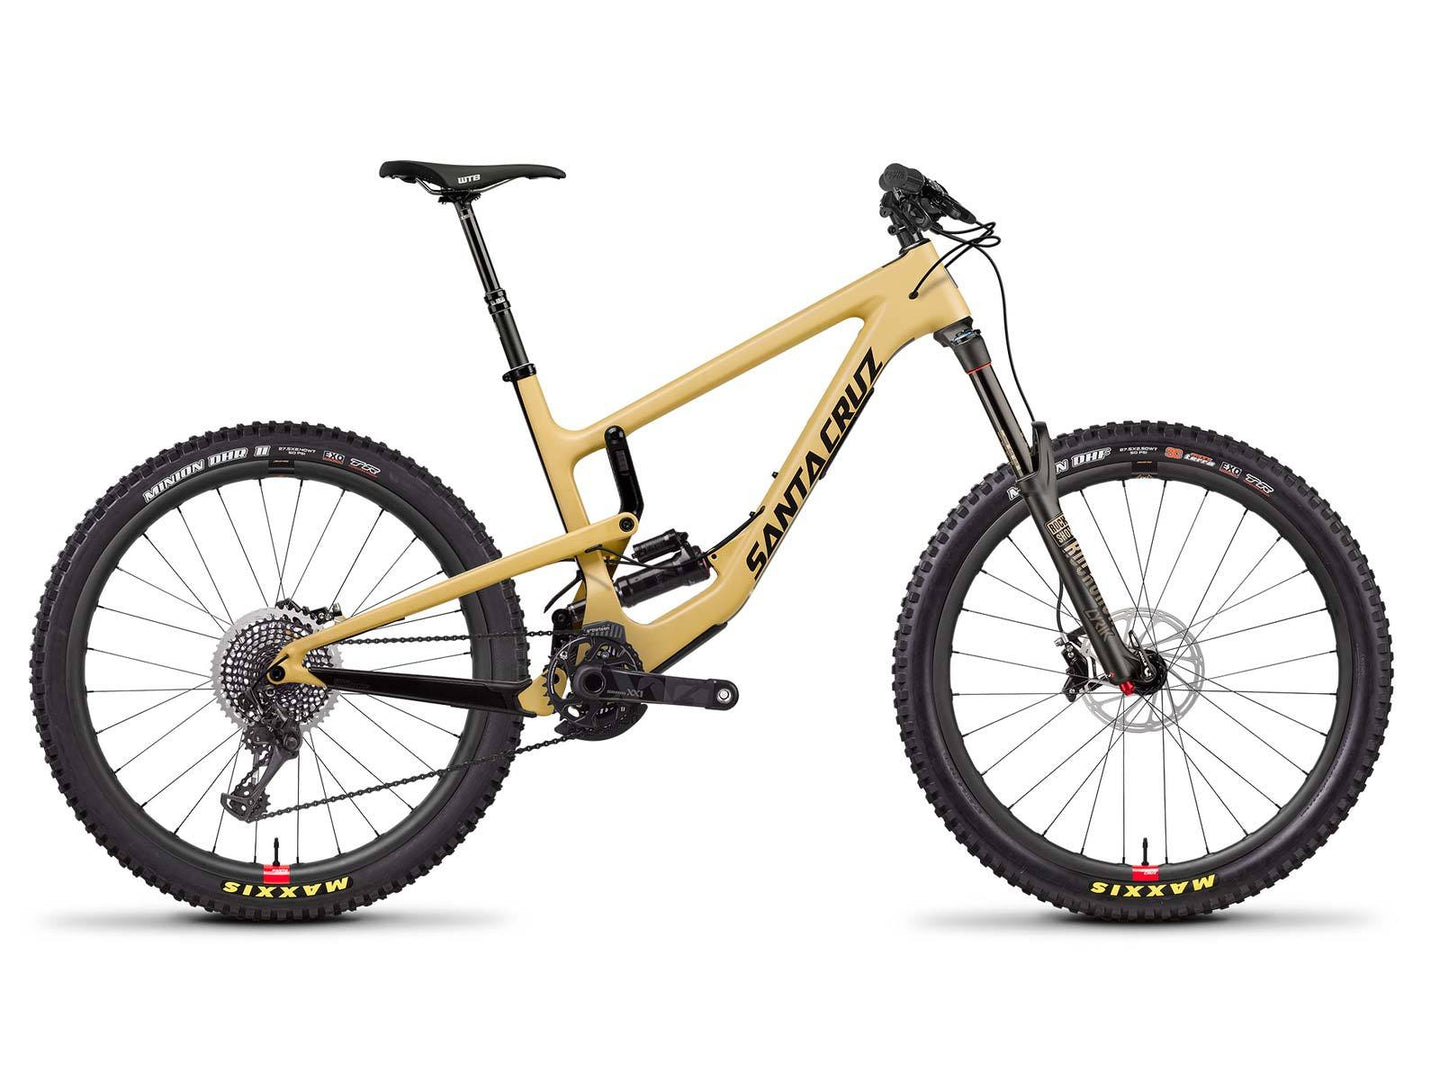 Santa Cruz Nomad Carbon CC XX1 Air Reserve Bike - Tan/Black